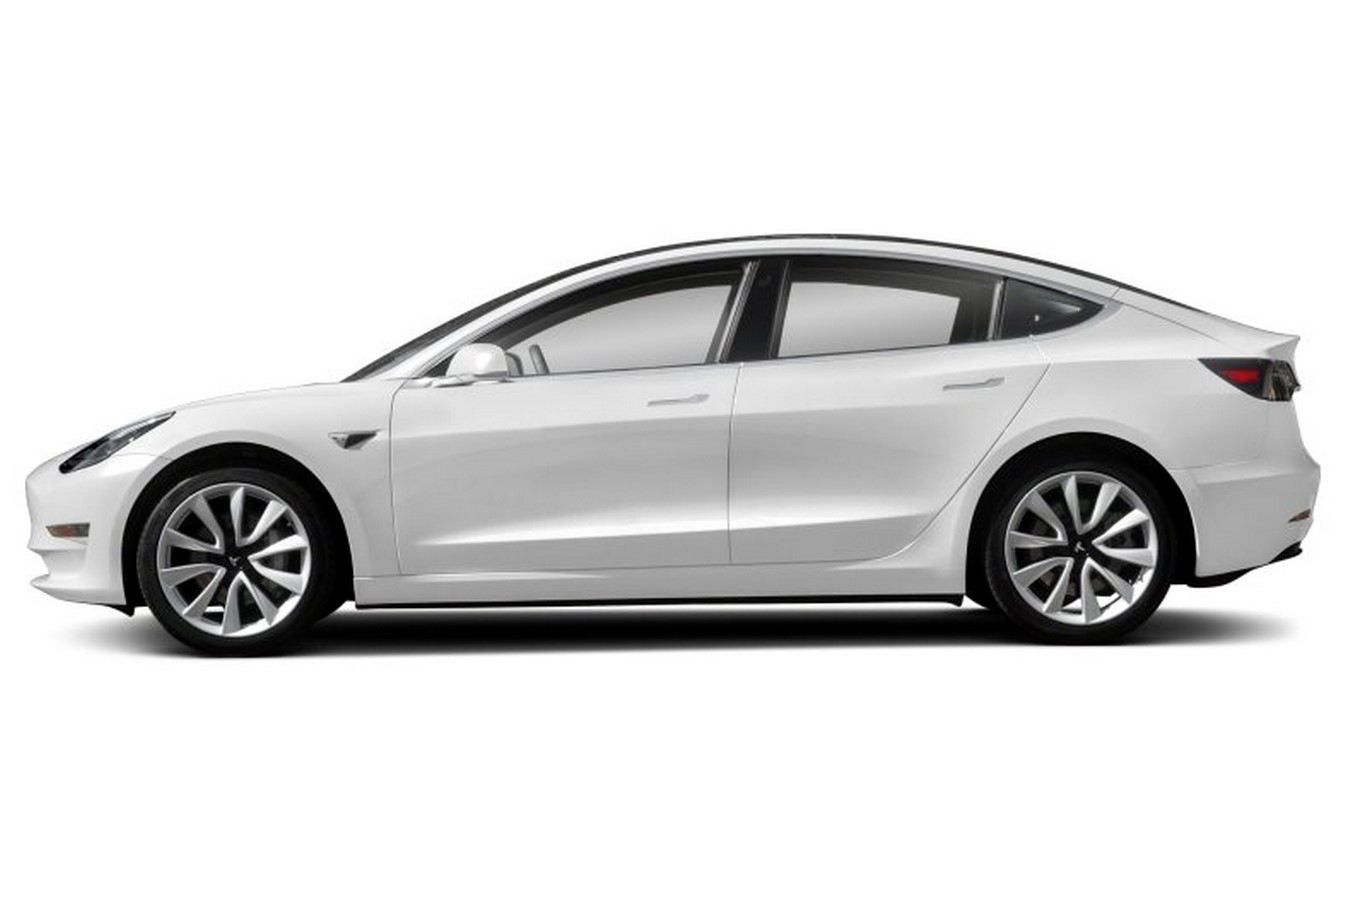 What are Tesla Trunks? - Sheet4